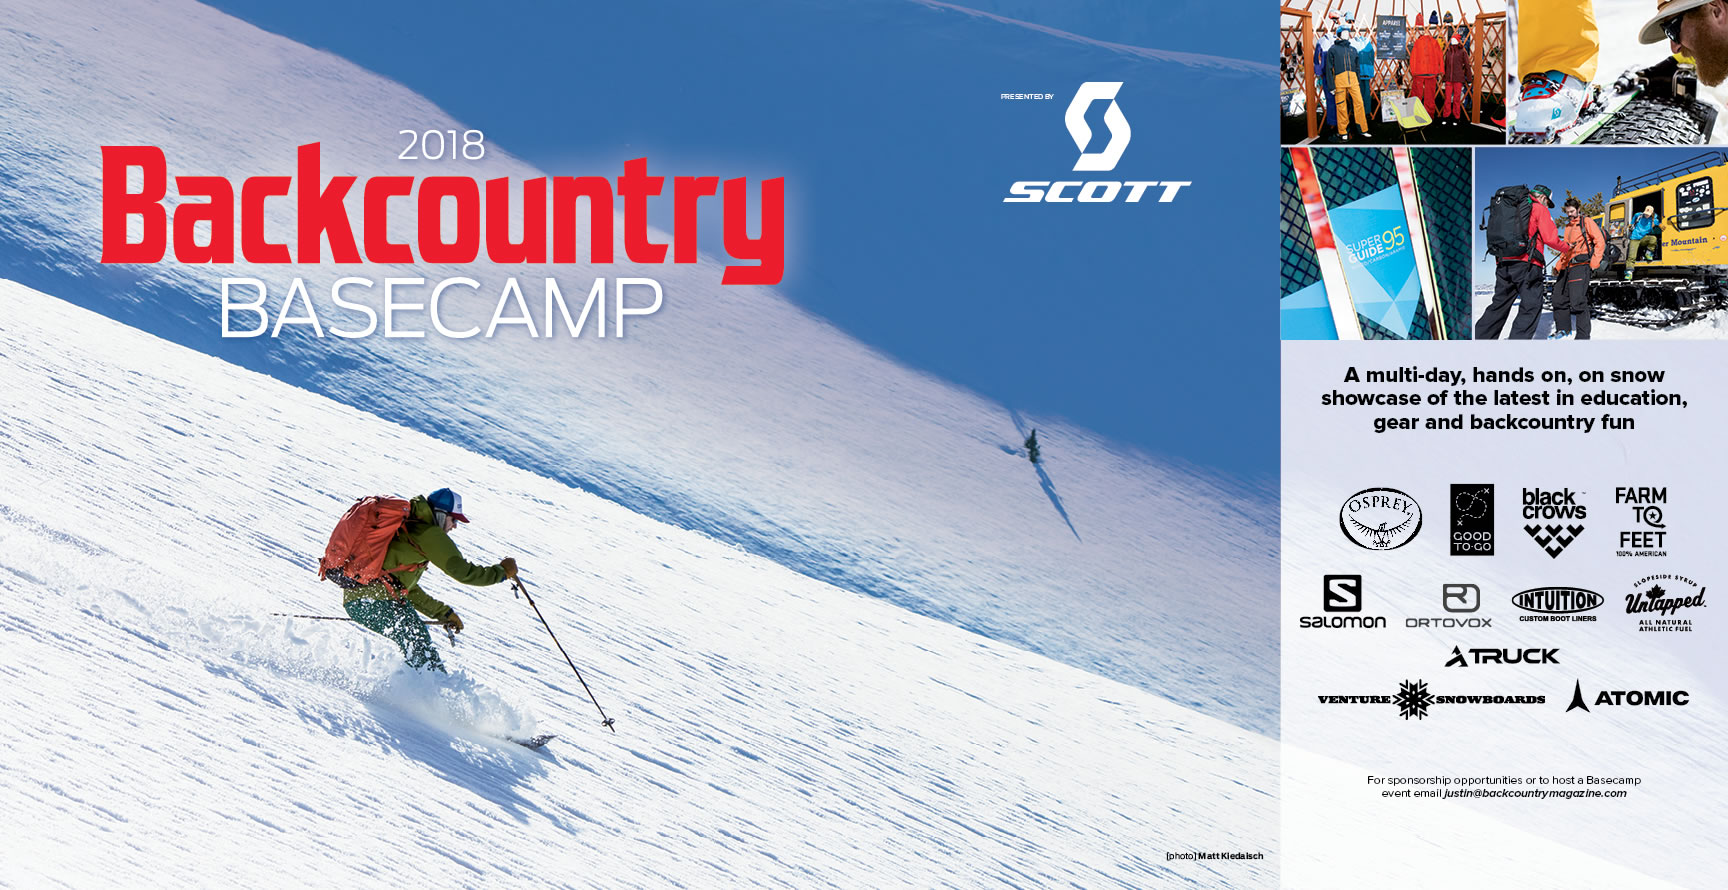 2018 Backcountry Basecamp Presented by Scott